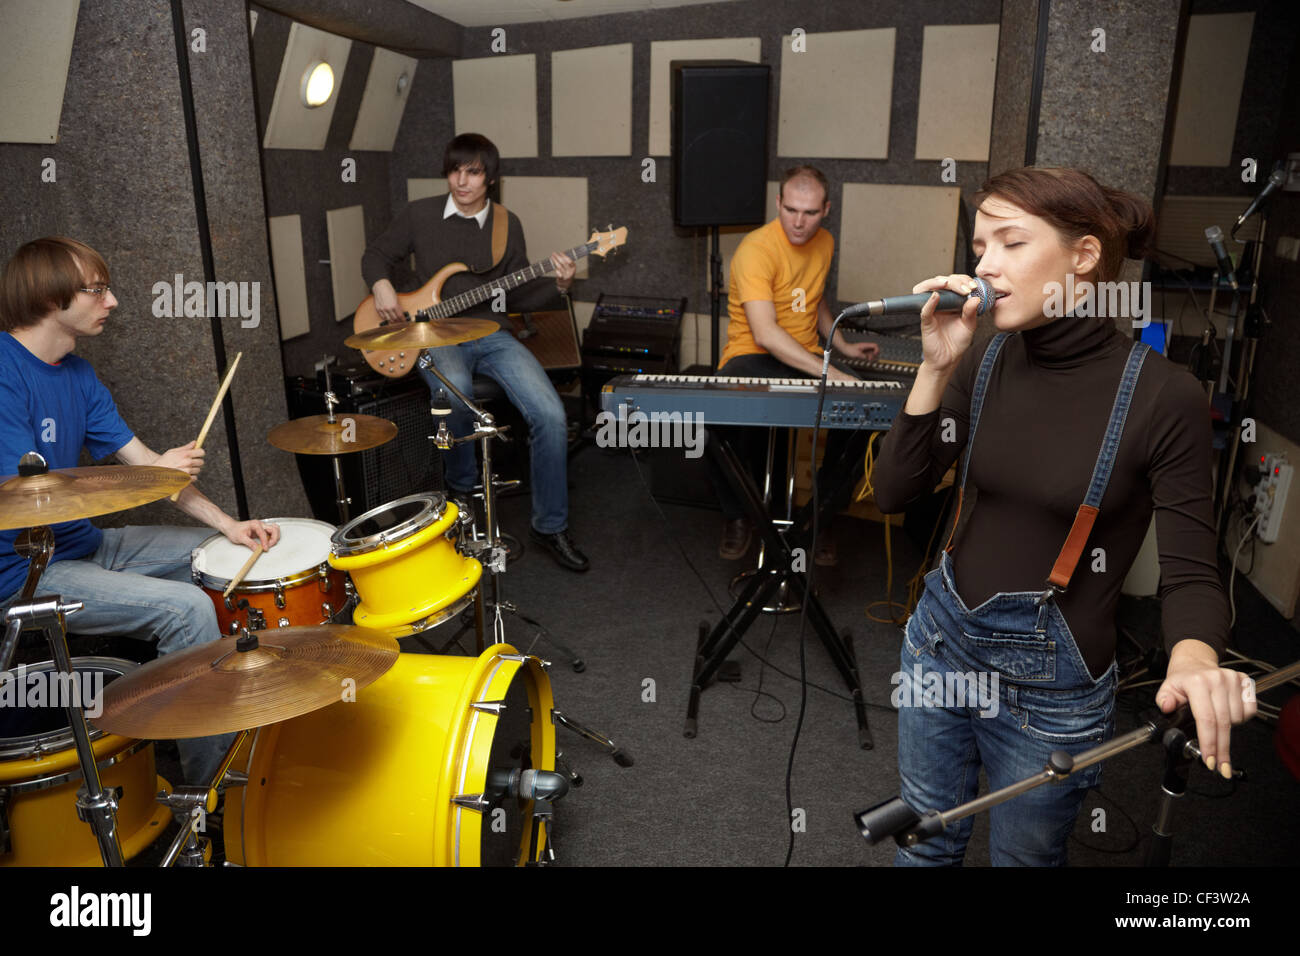 a rock band working in studio. vocalist girl is singing. focus on clothers of vocalist girl - Stock Image